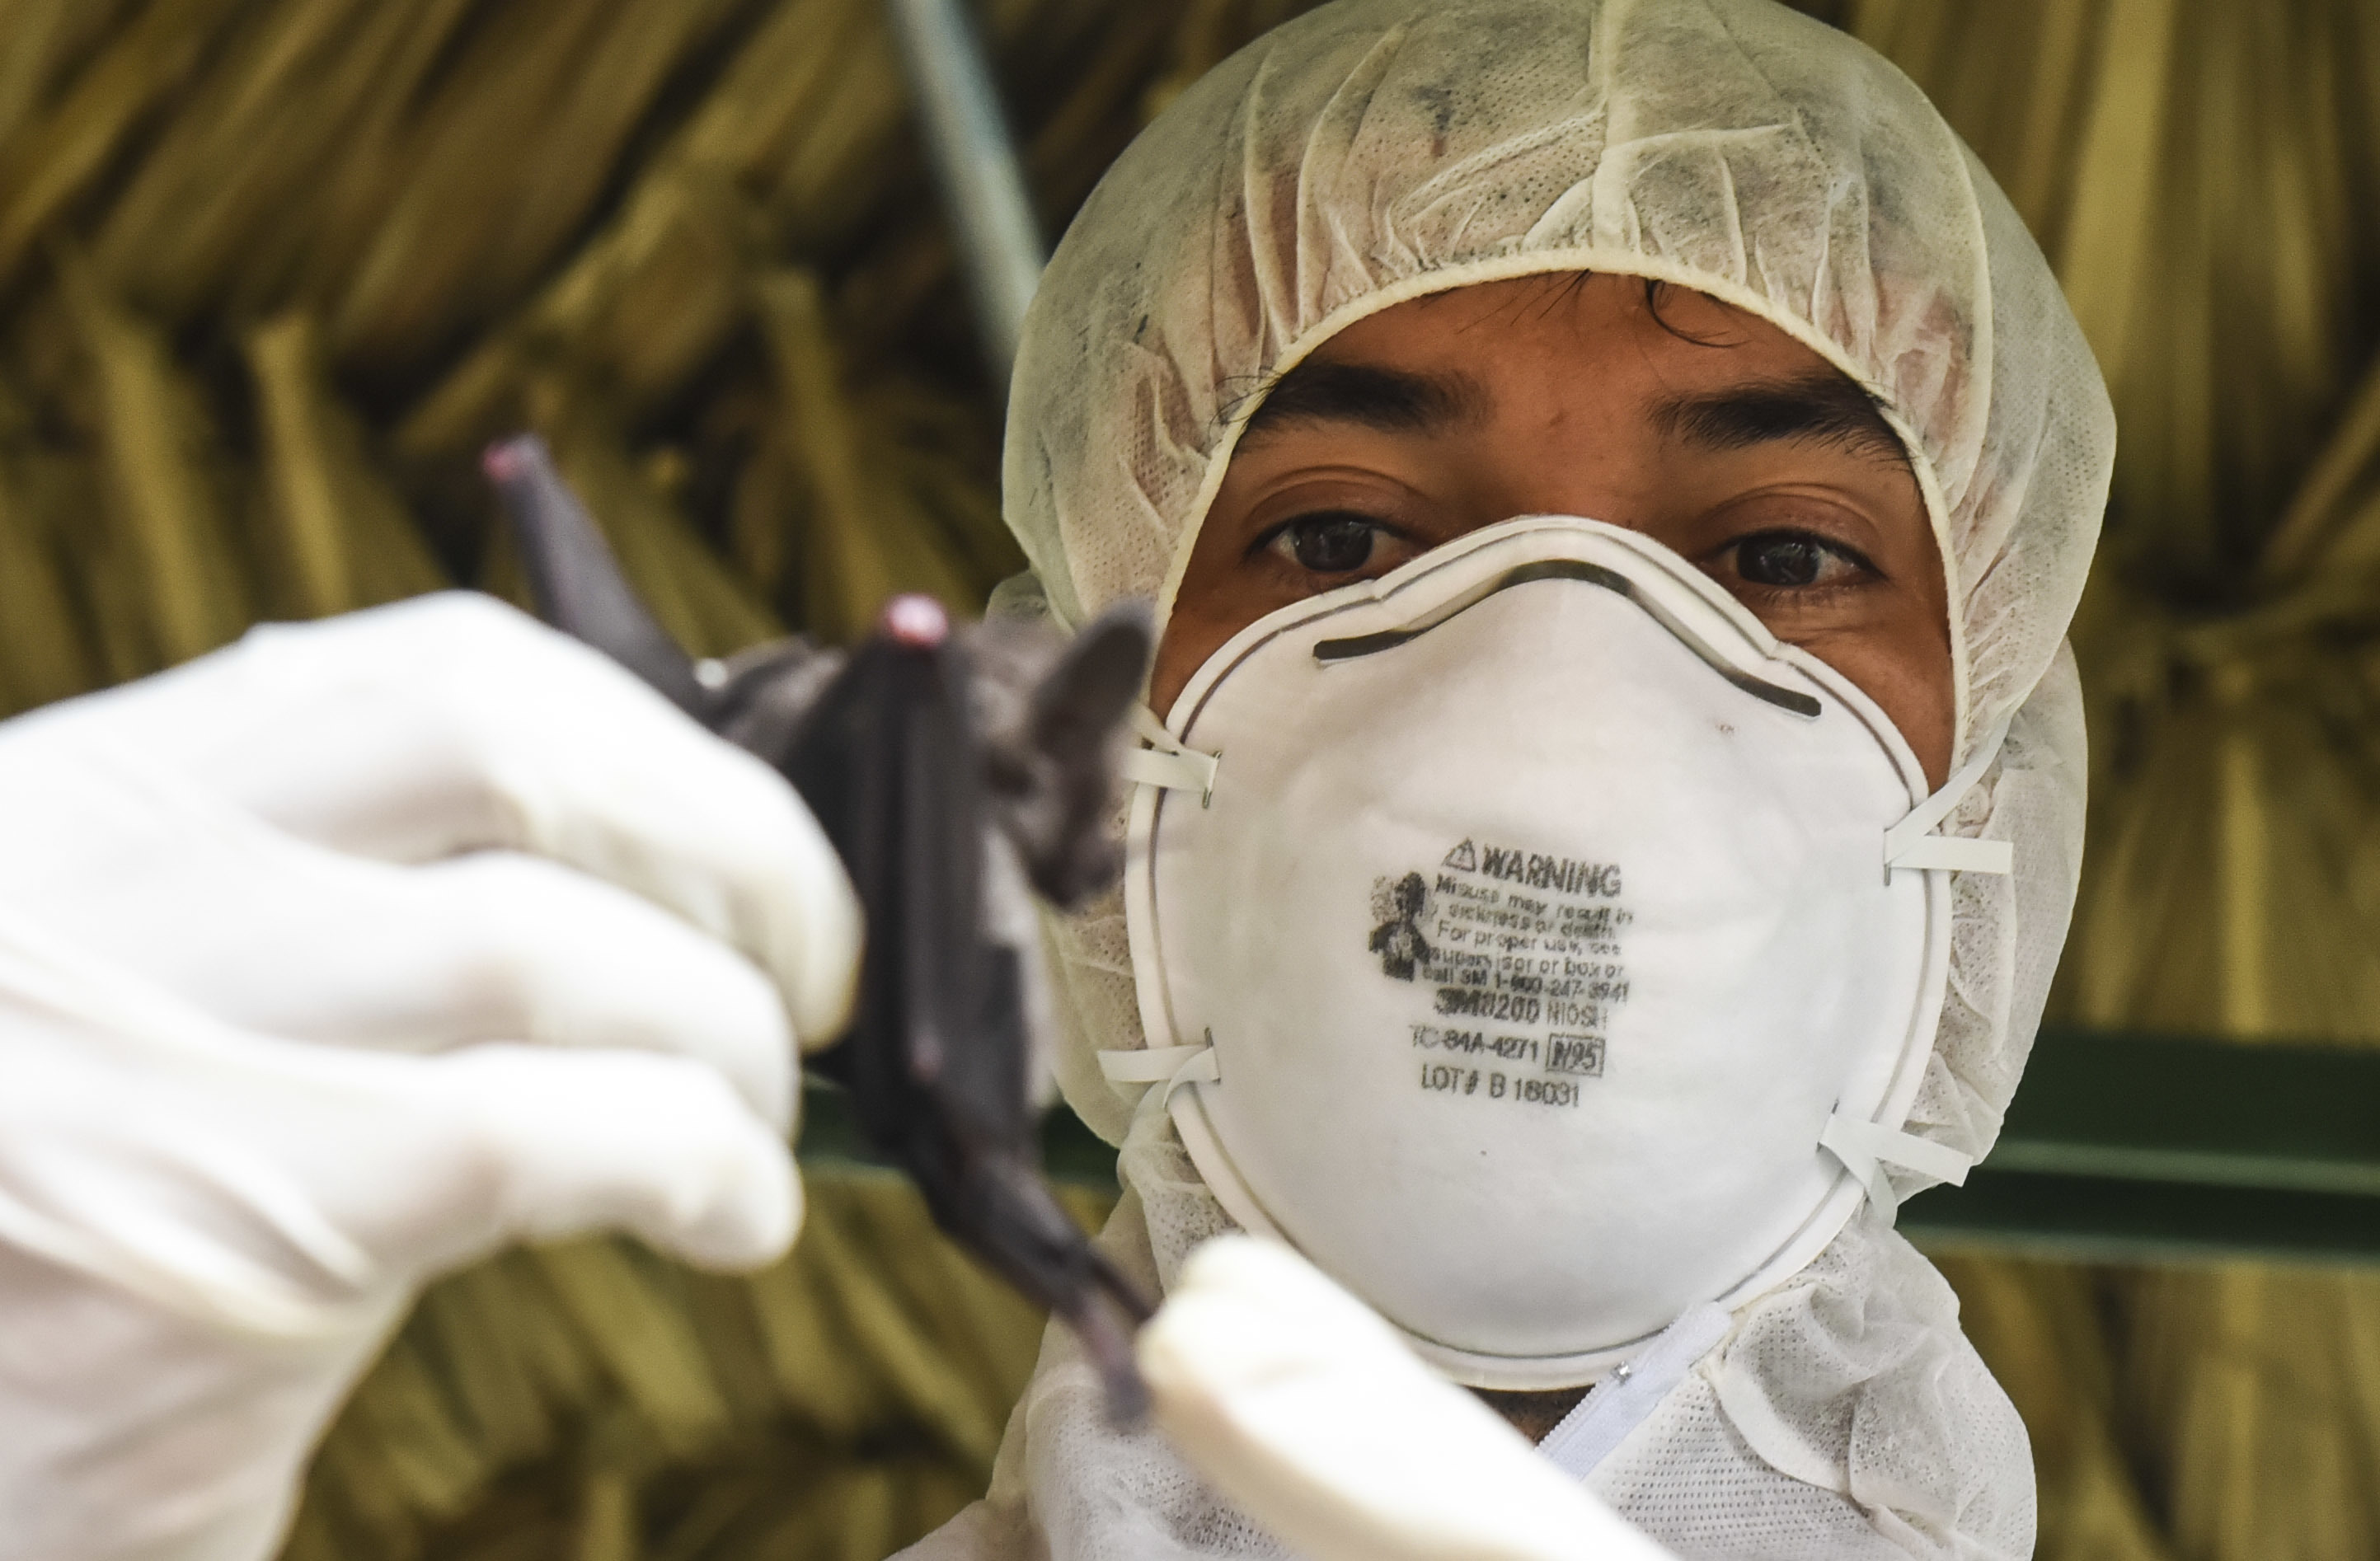 Publio Gonzalez, a biologist with the Gorgas Institute, holds a bat in Meteti, Panama, June 6, 2018, as part an Emerging Infectious Diseases Training Event (U.S. Air Force photo by Senior Airman Dustin Mullen).